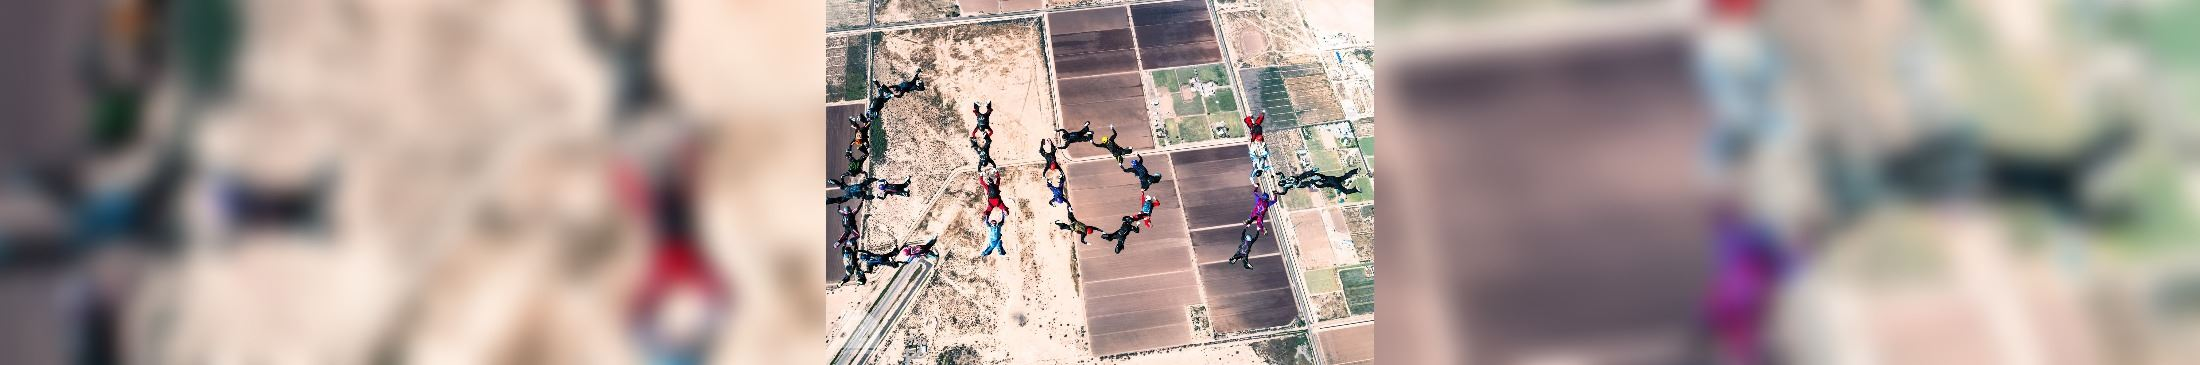 Skydivers linking hands to spell ELOY